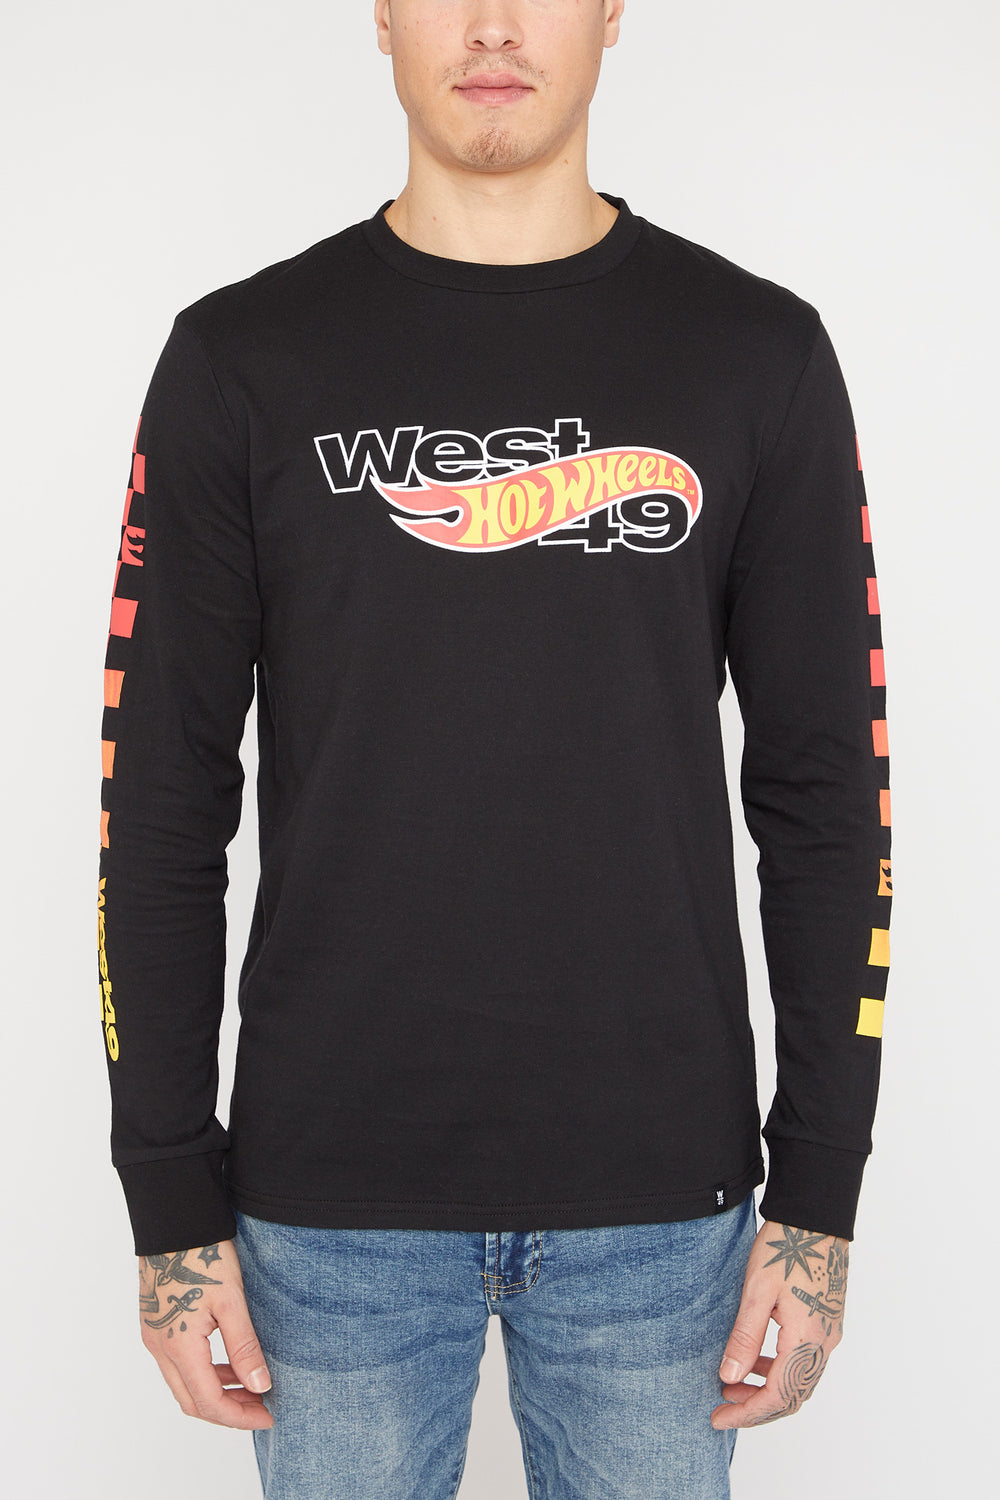 Hot Wheels X West49 Mens Long Sleeves Black